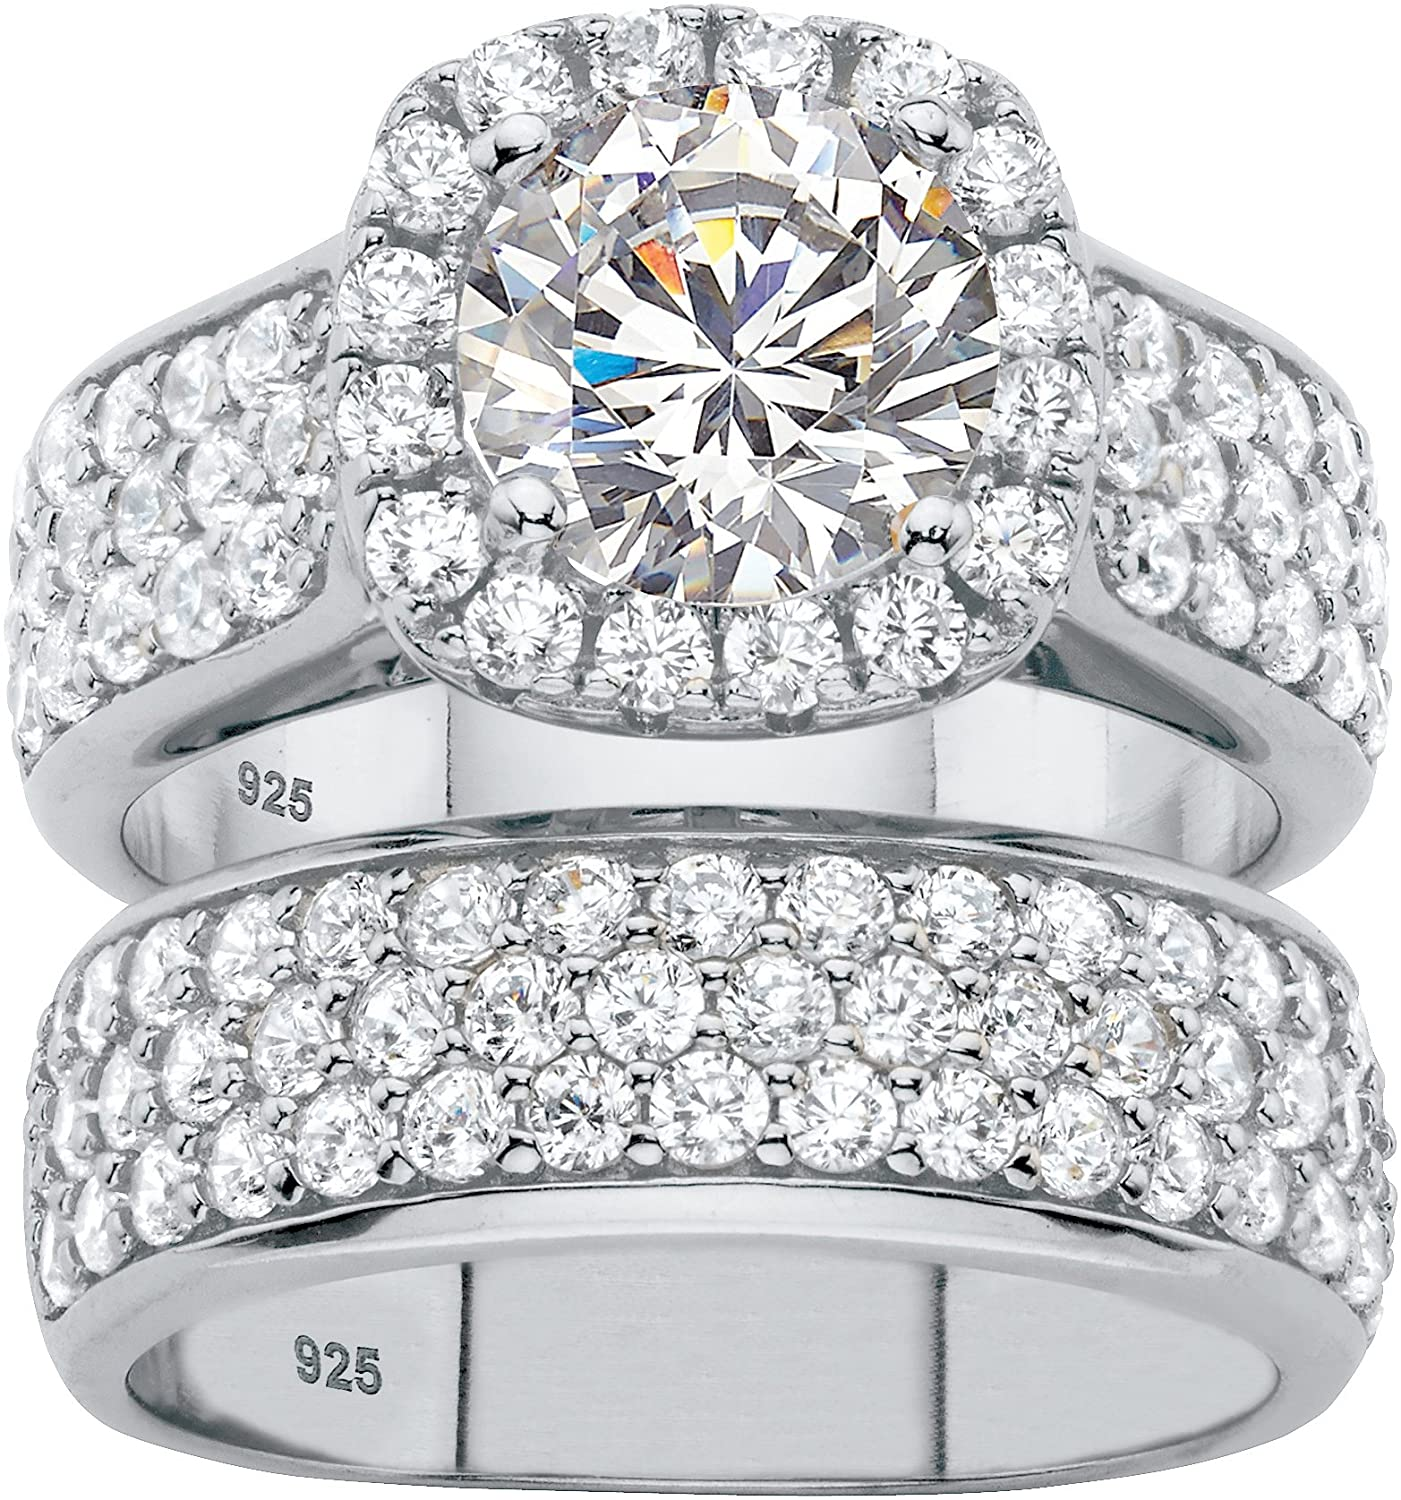 Platinum over Sterling Silver Round Cubic Zirconia 2 Pair Halo Bridal Ring Set